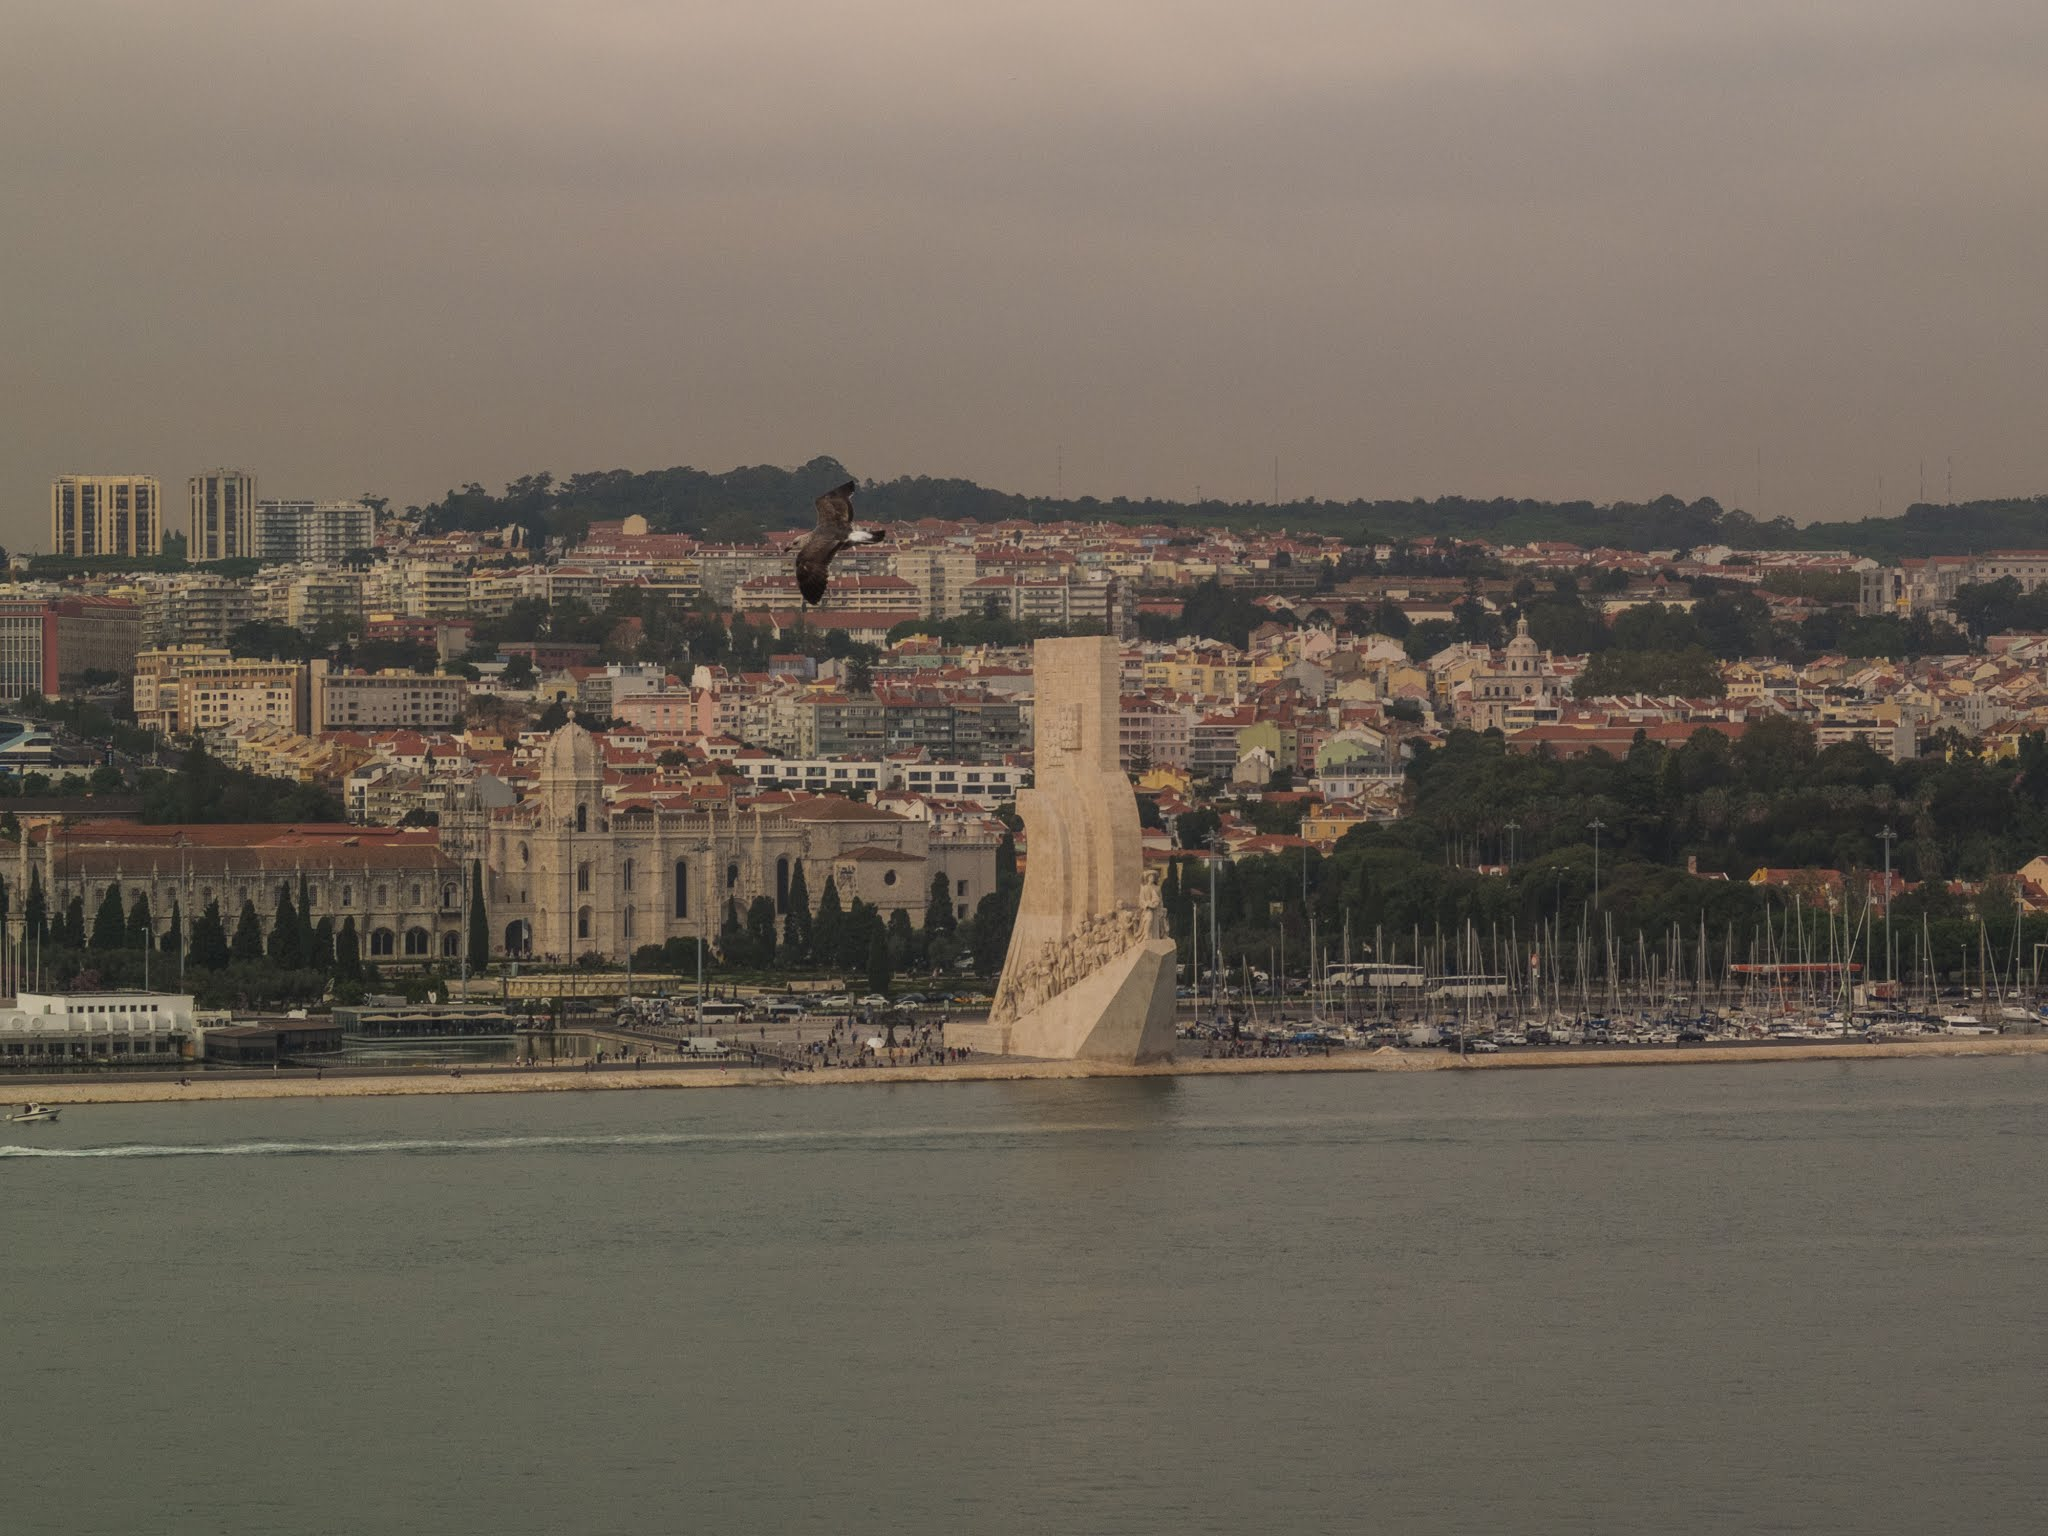 Padrão dos Descobrimentos - Monument of the Discoveries on the northern bank of the Tagus River estuary.